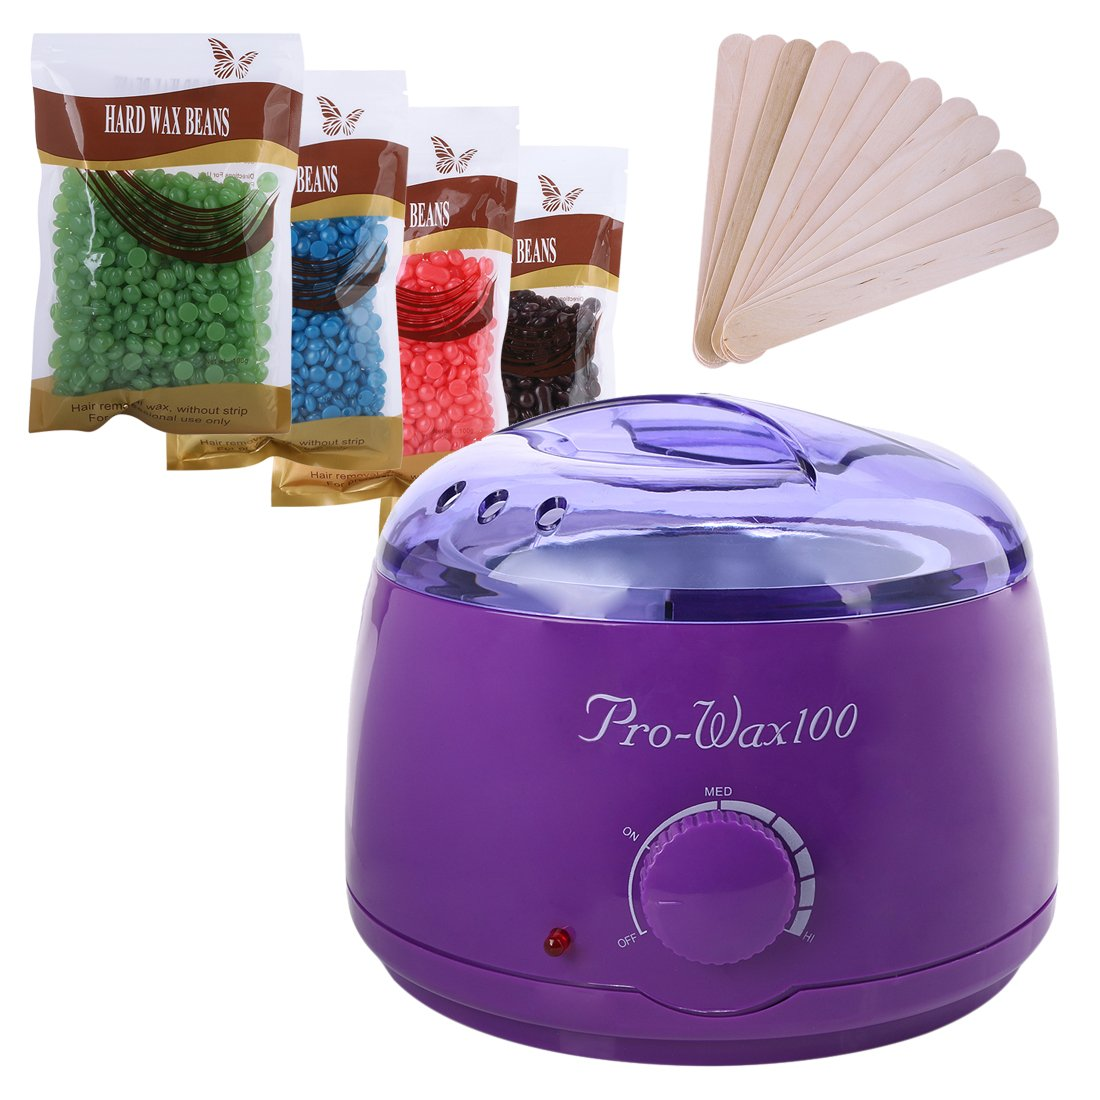 Complete Waxing Kit Heater Wax Pot Hair Removal Hot Wax Bean Stick Machine Kit With Wax Beans + Sticks (Purple)